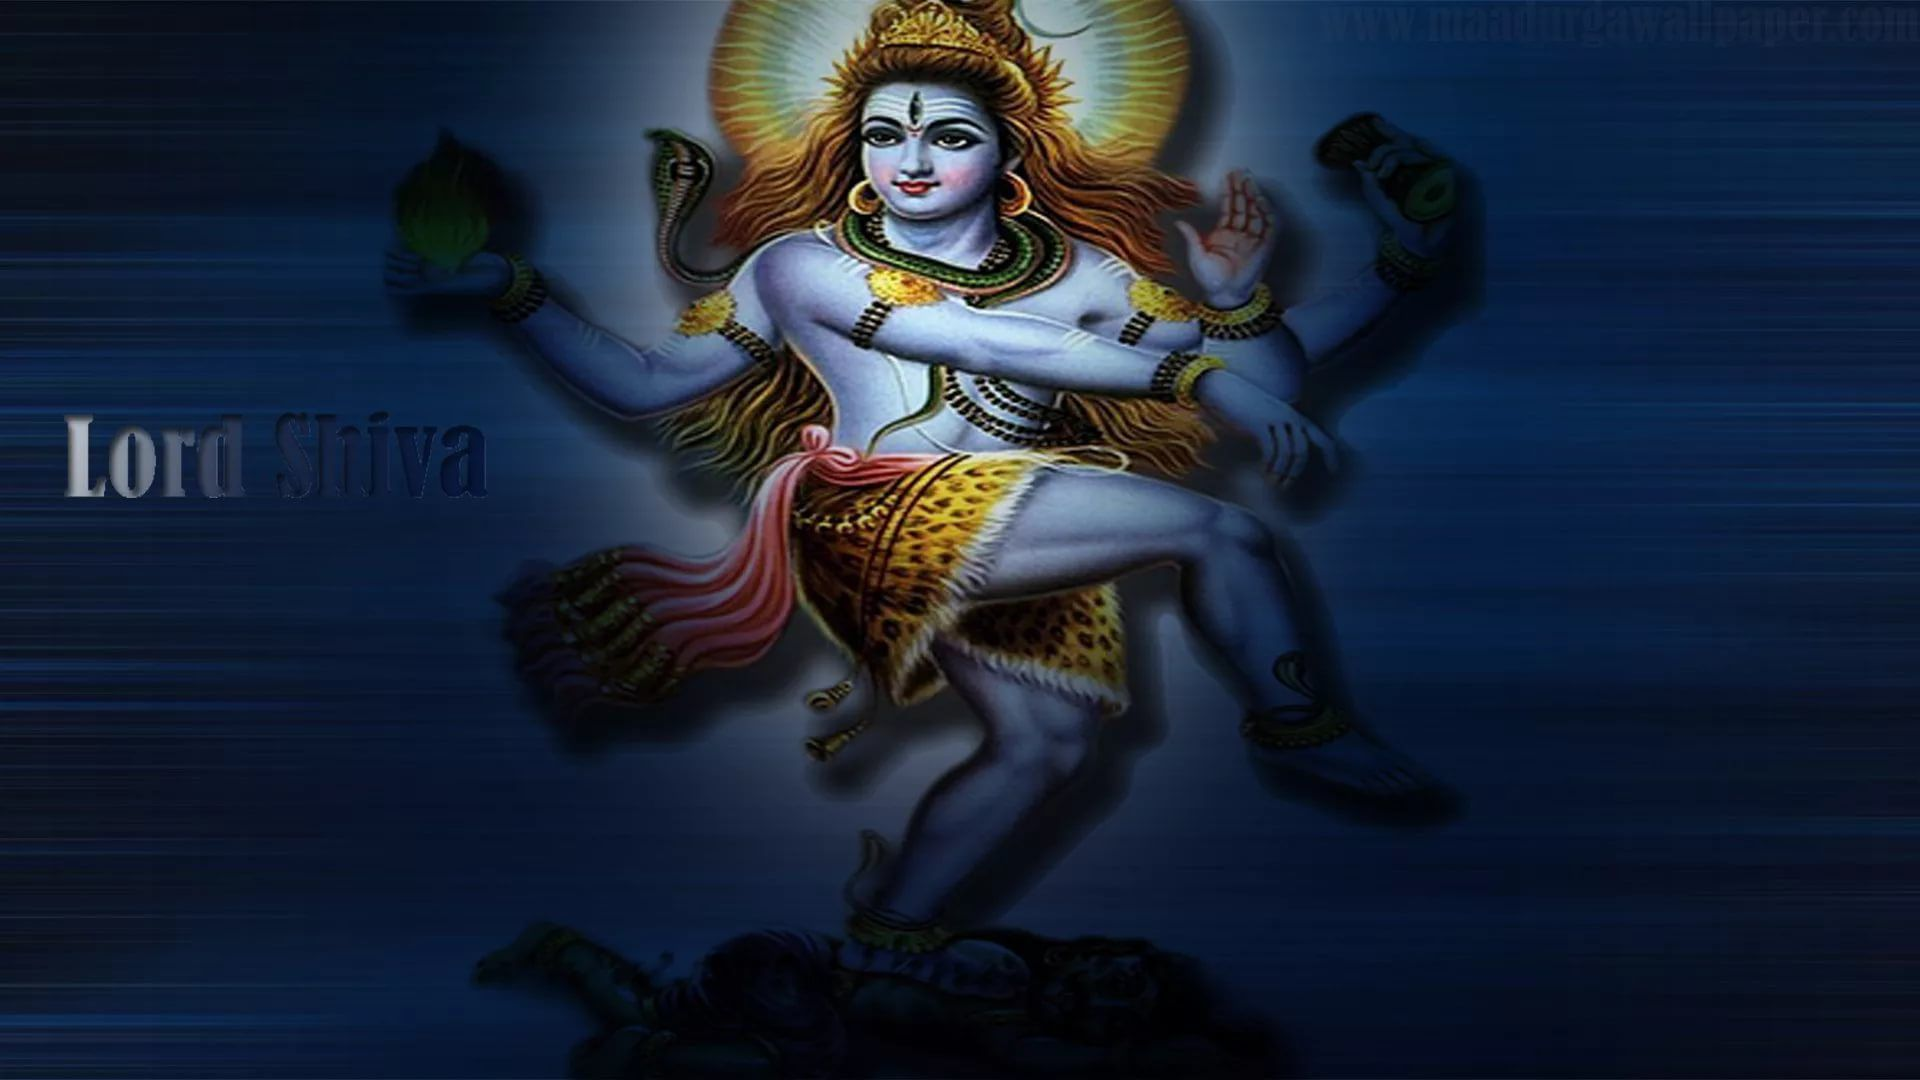 Lord Shiva Tandav Hd hd wallpaper